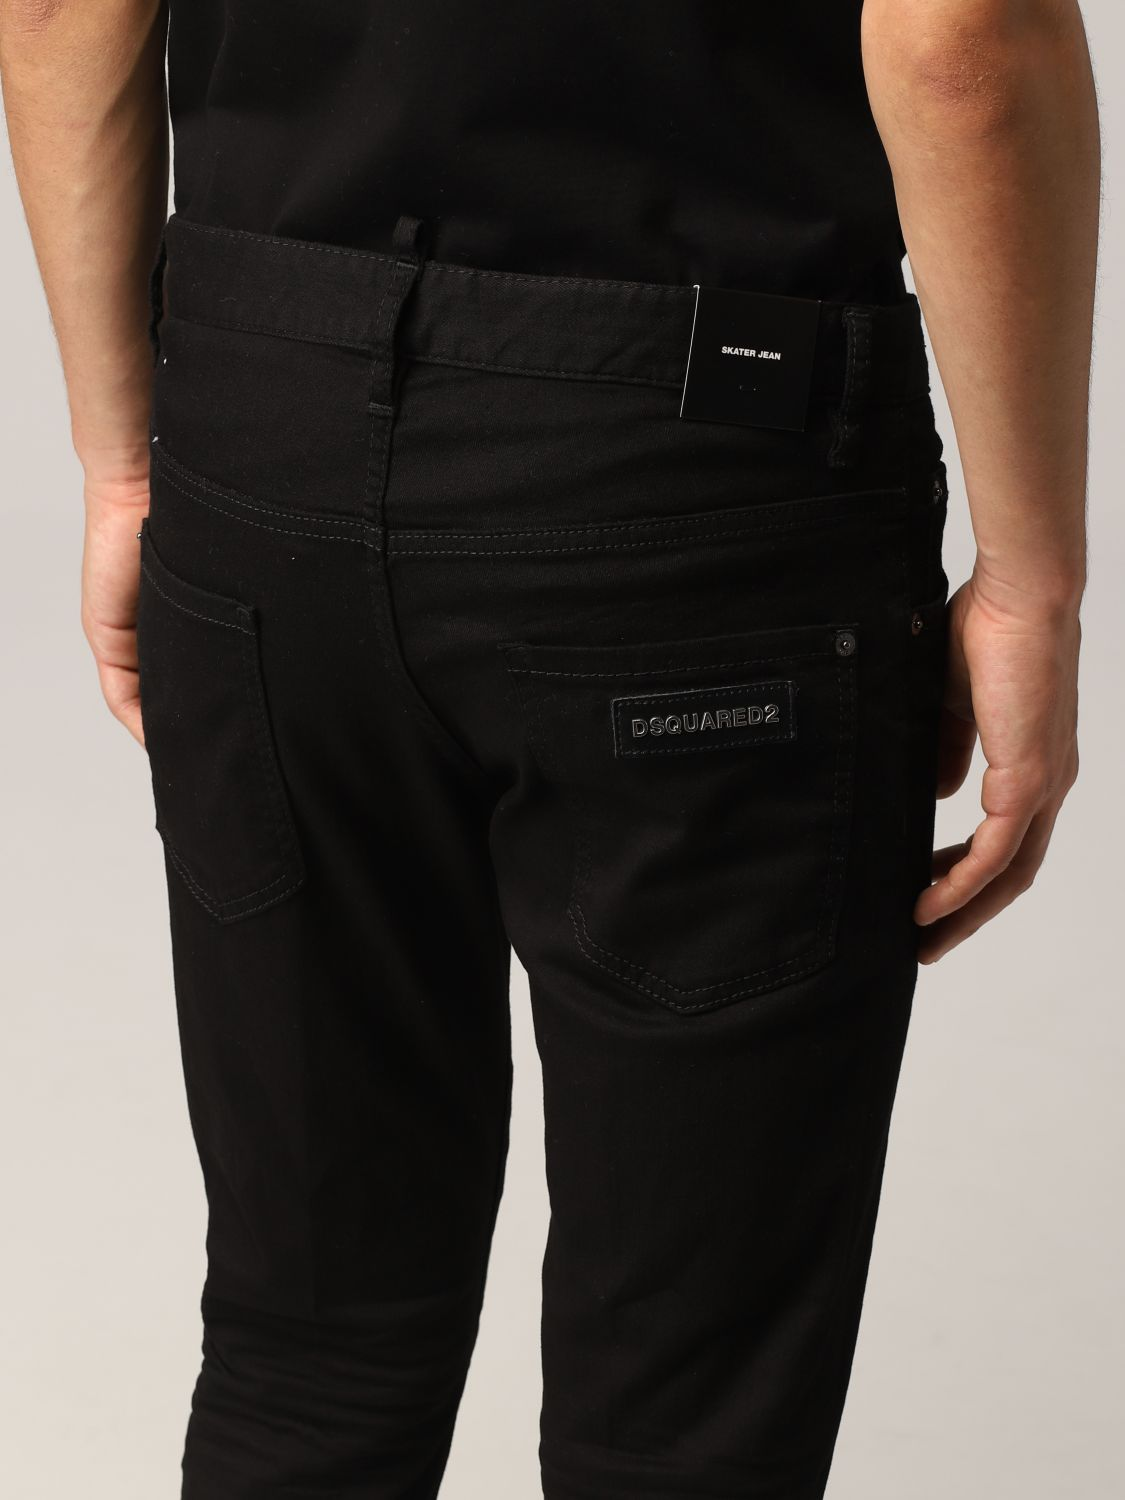 Jeans Dsquared2: Jeans Dsquared2 skinny fit nero 5